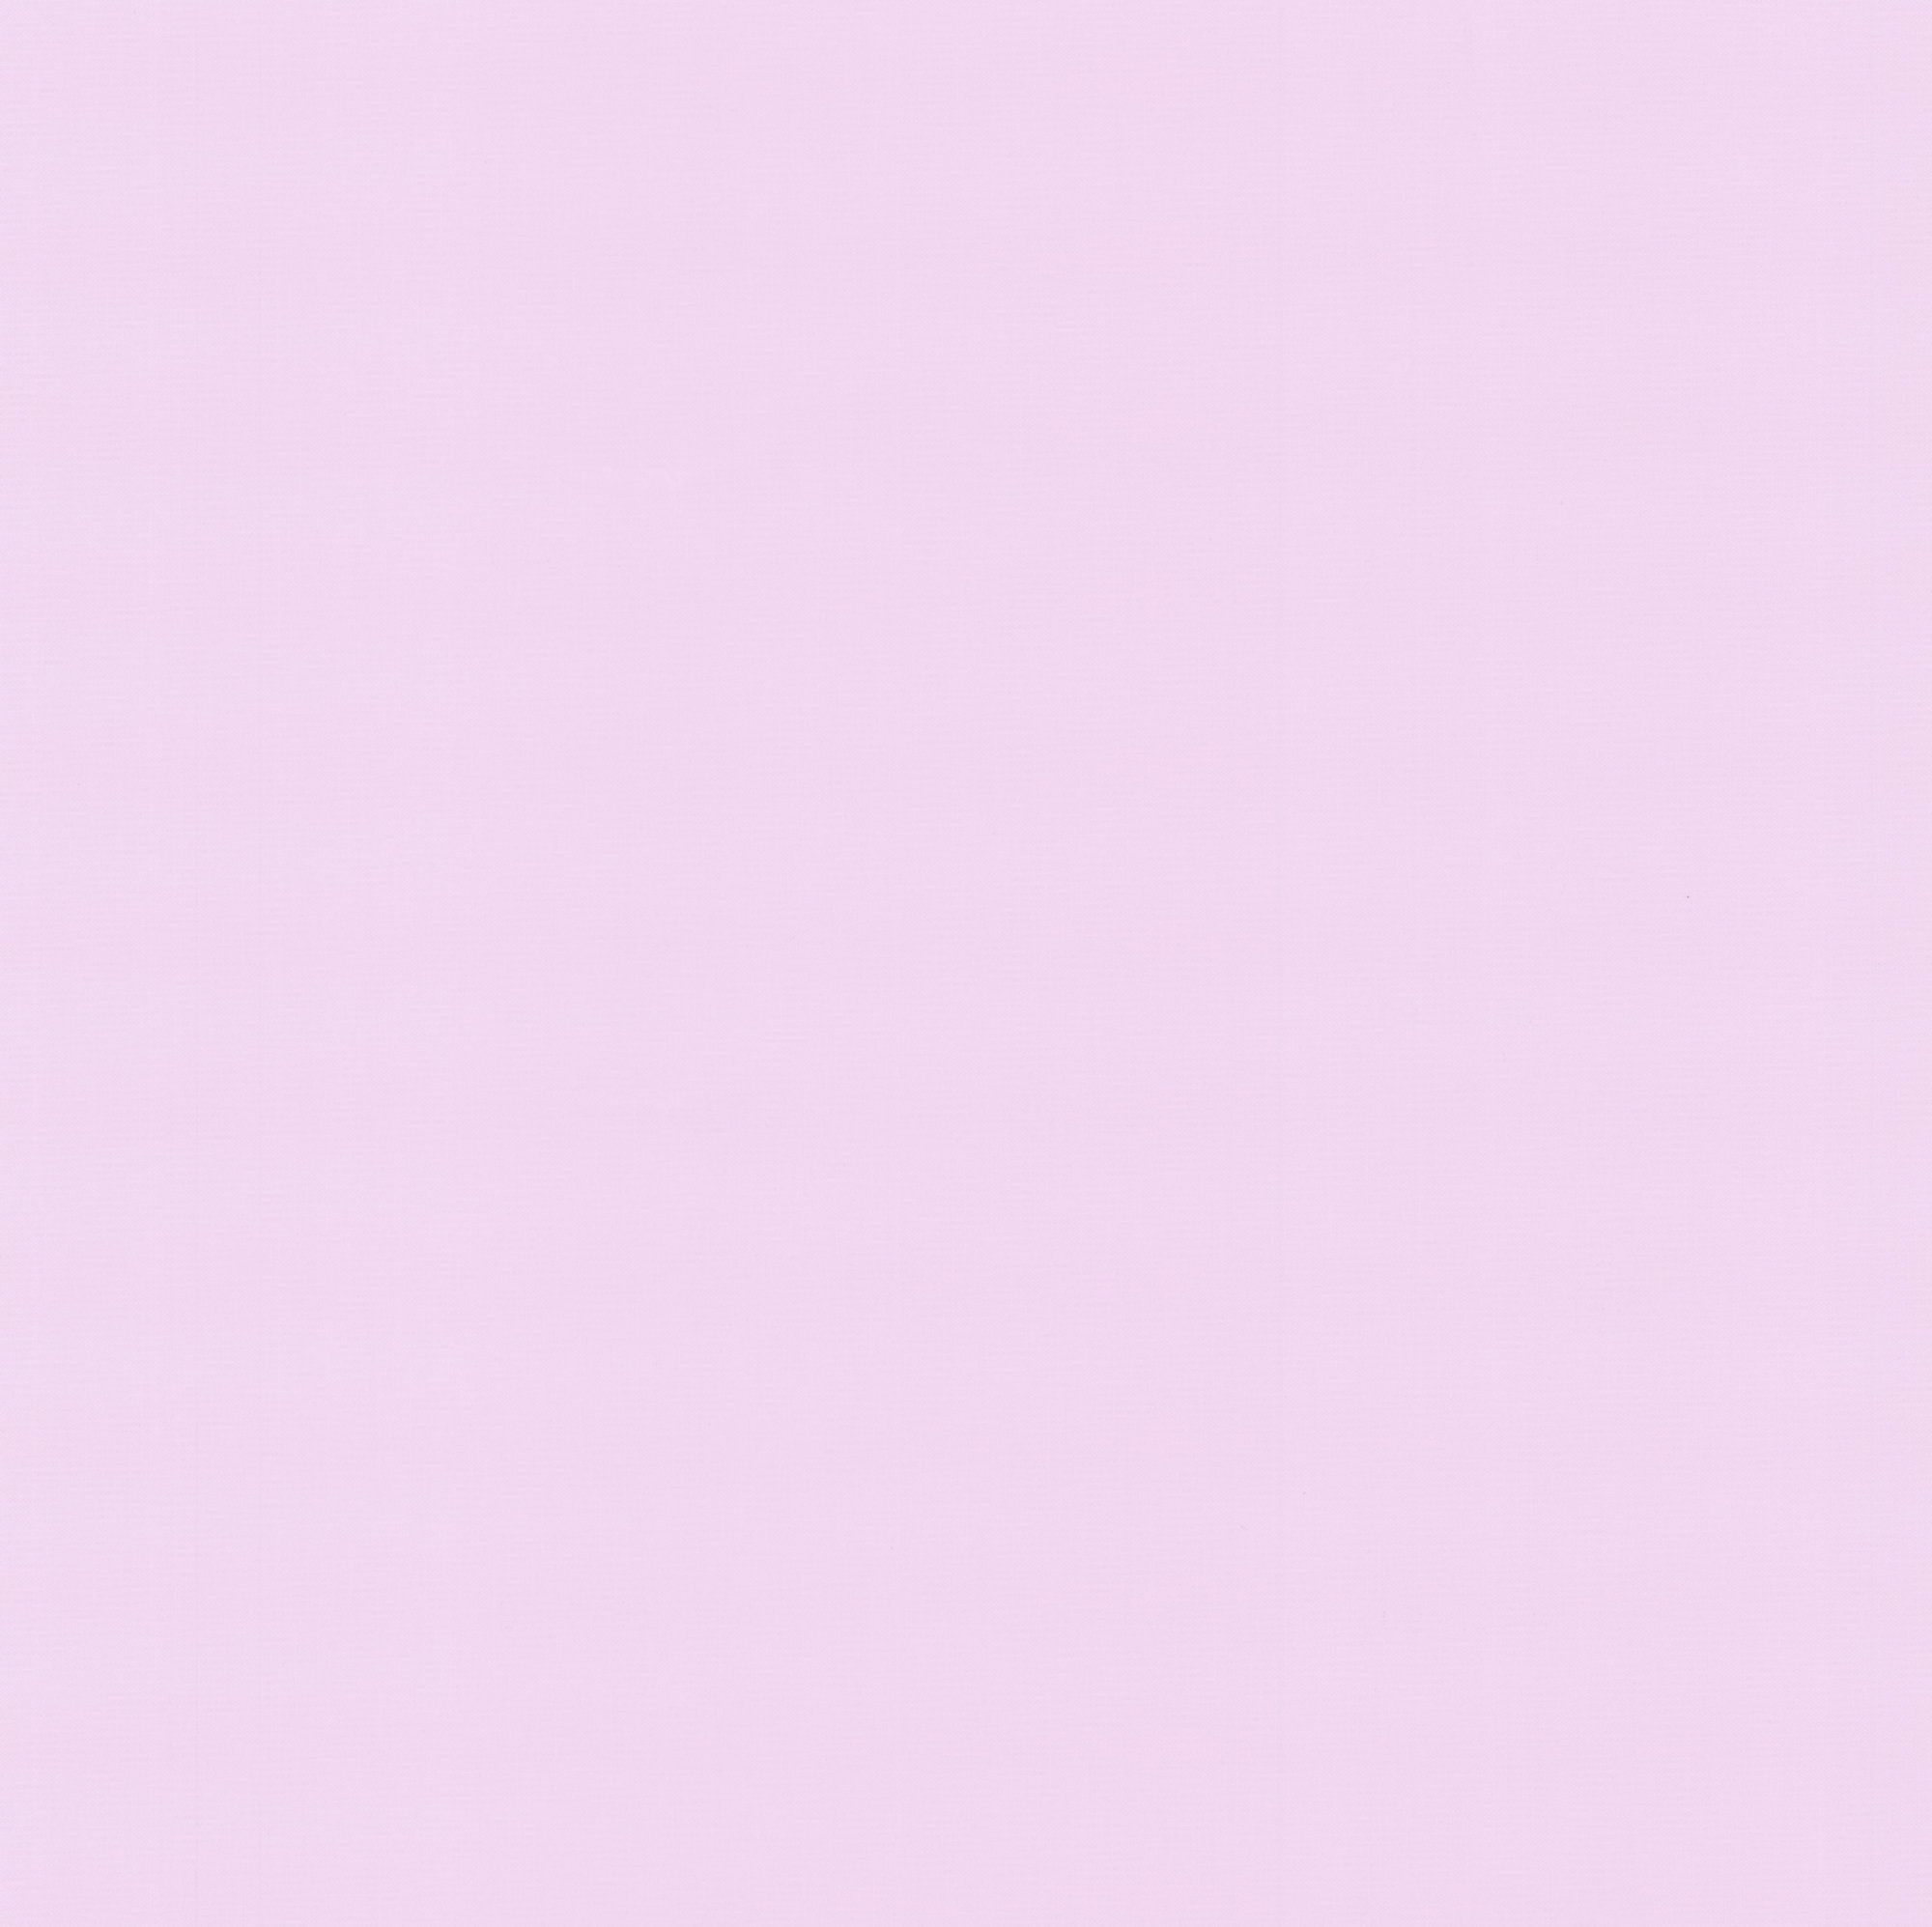 2000x1995 Baby Pink, 100% Quality HD Wallpapers gratis